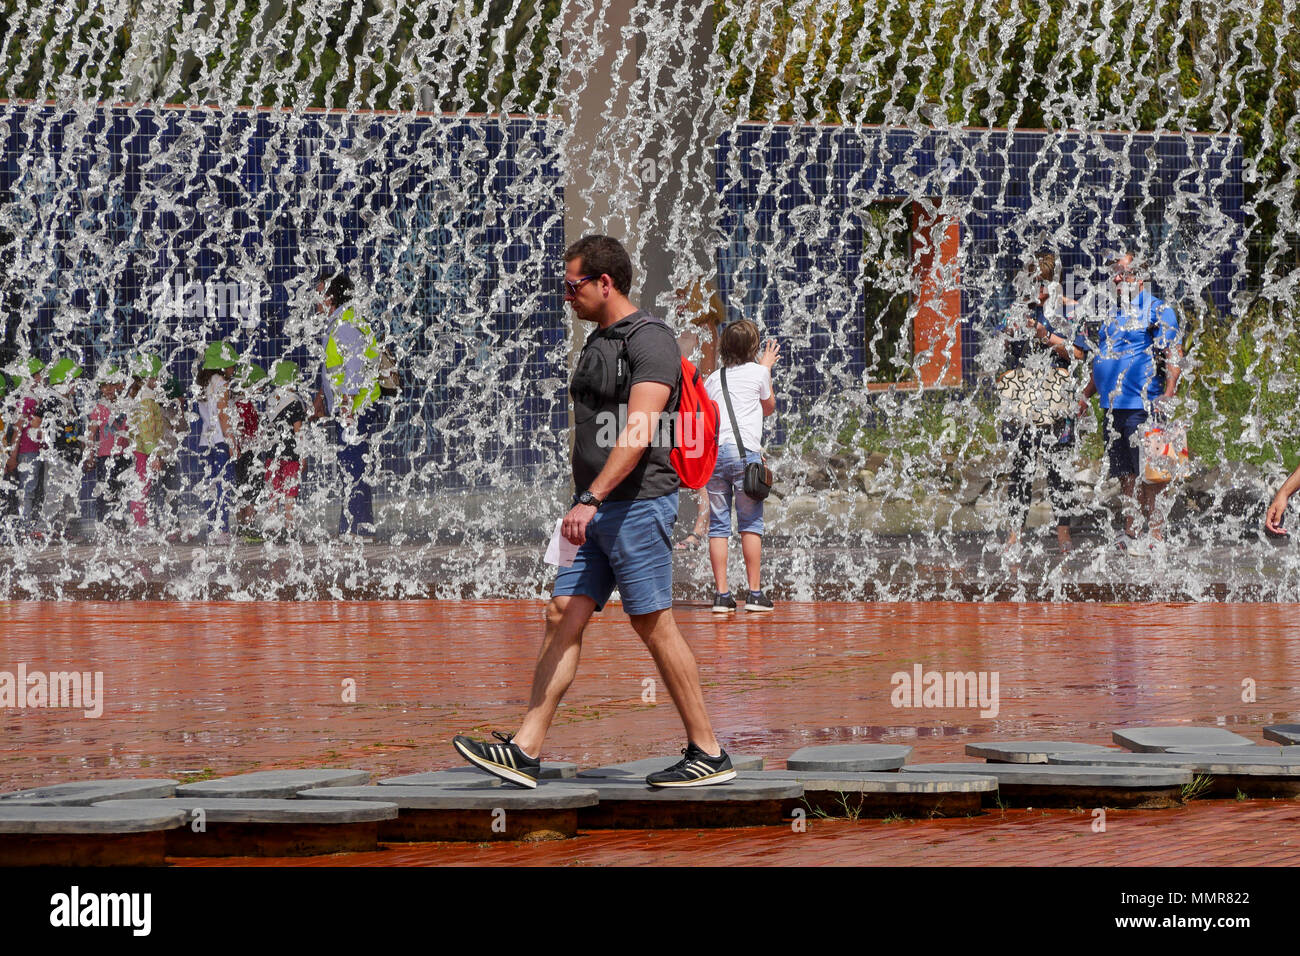 Tourist walking in front of a water curtain, in Park of the Nations district. Lisbon, Portugal - Stock Image